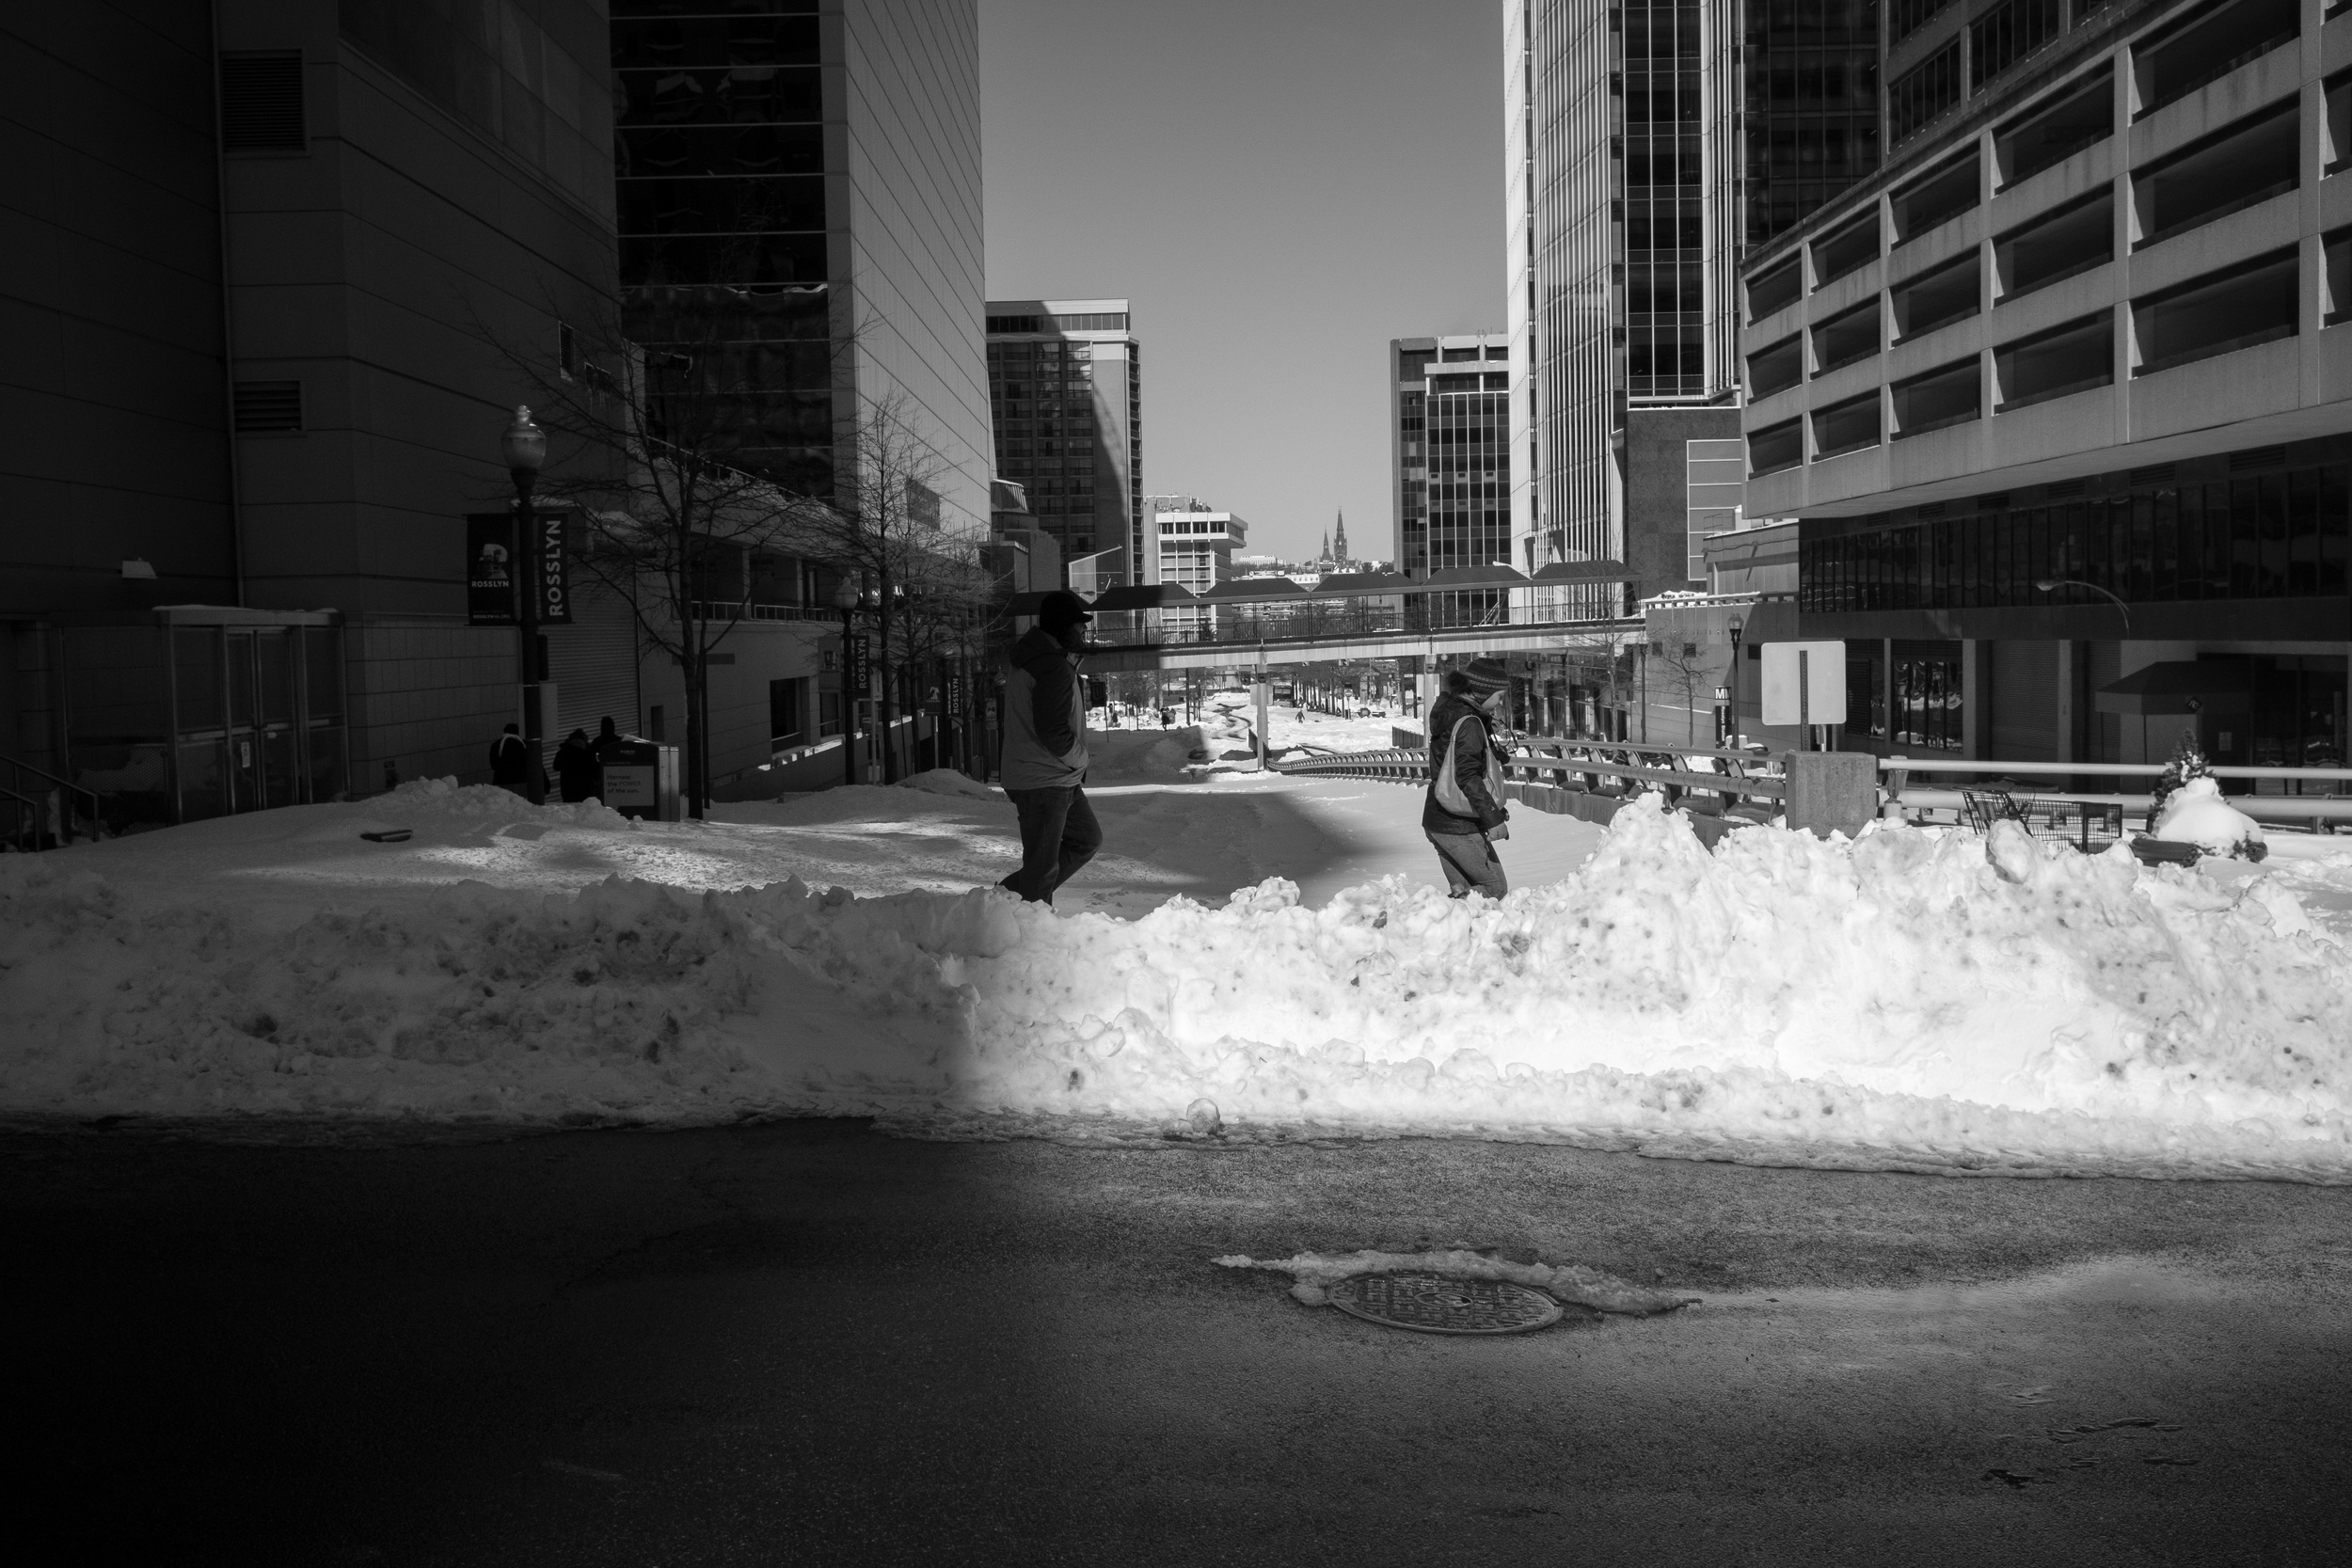 Even by noon, many side streets had not yet been plowed. I like the light in this photo, people emerging from the shadows; while some streets are cleared, many remain untouched and unexplored.